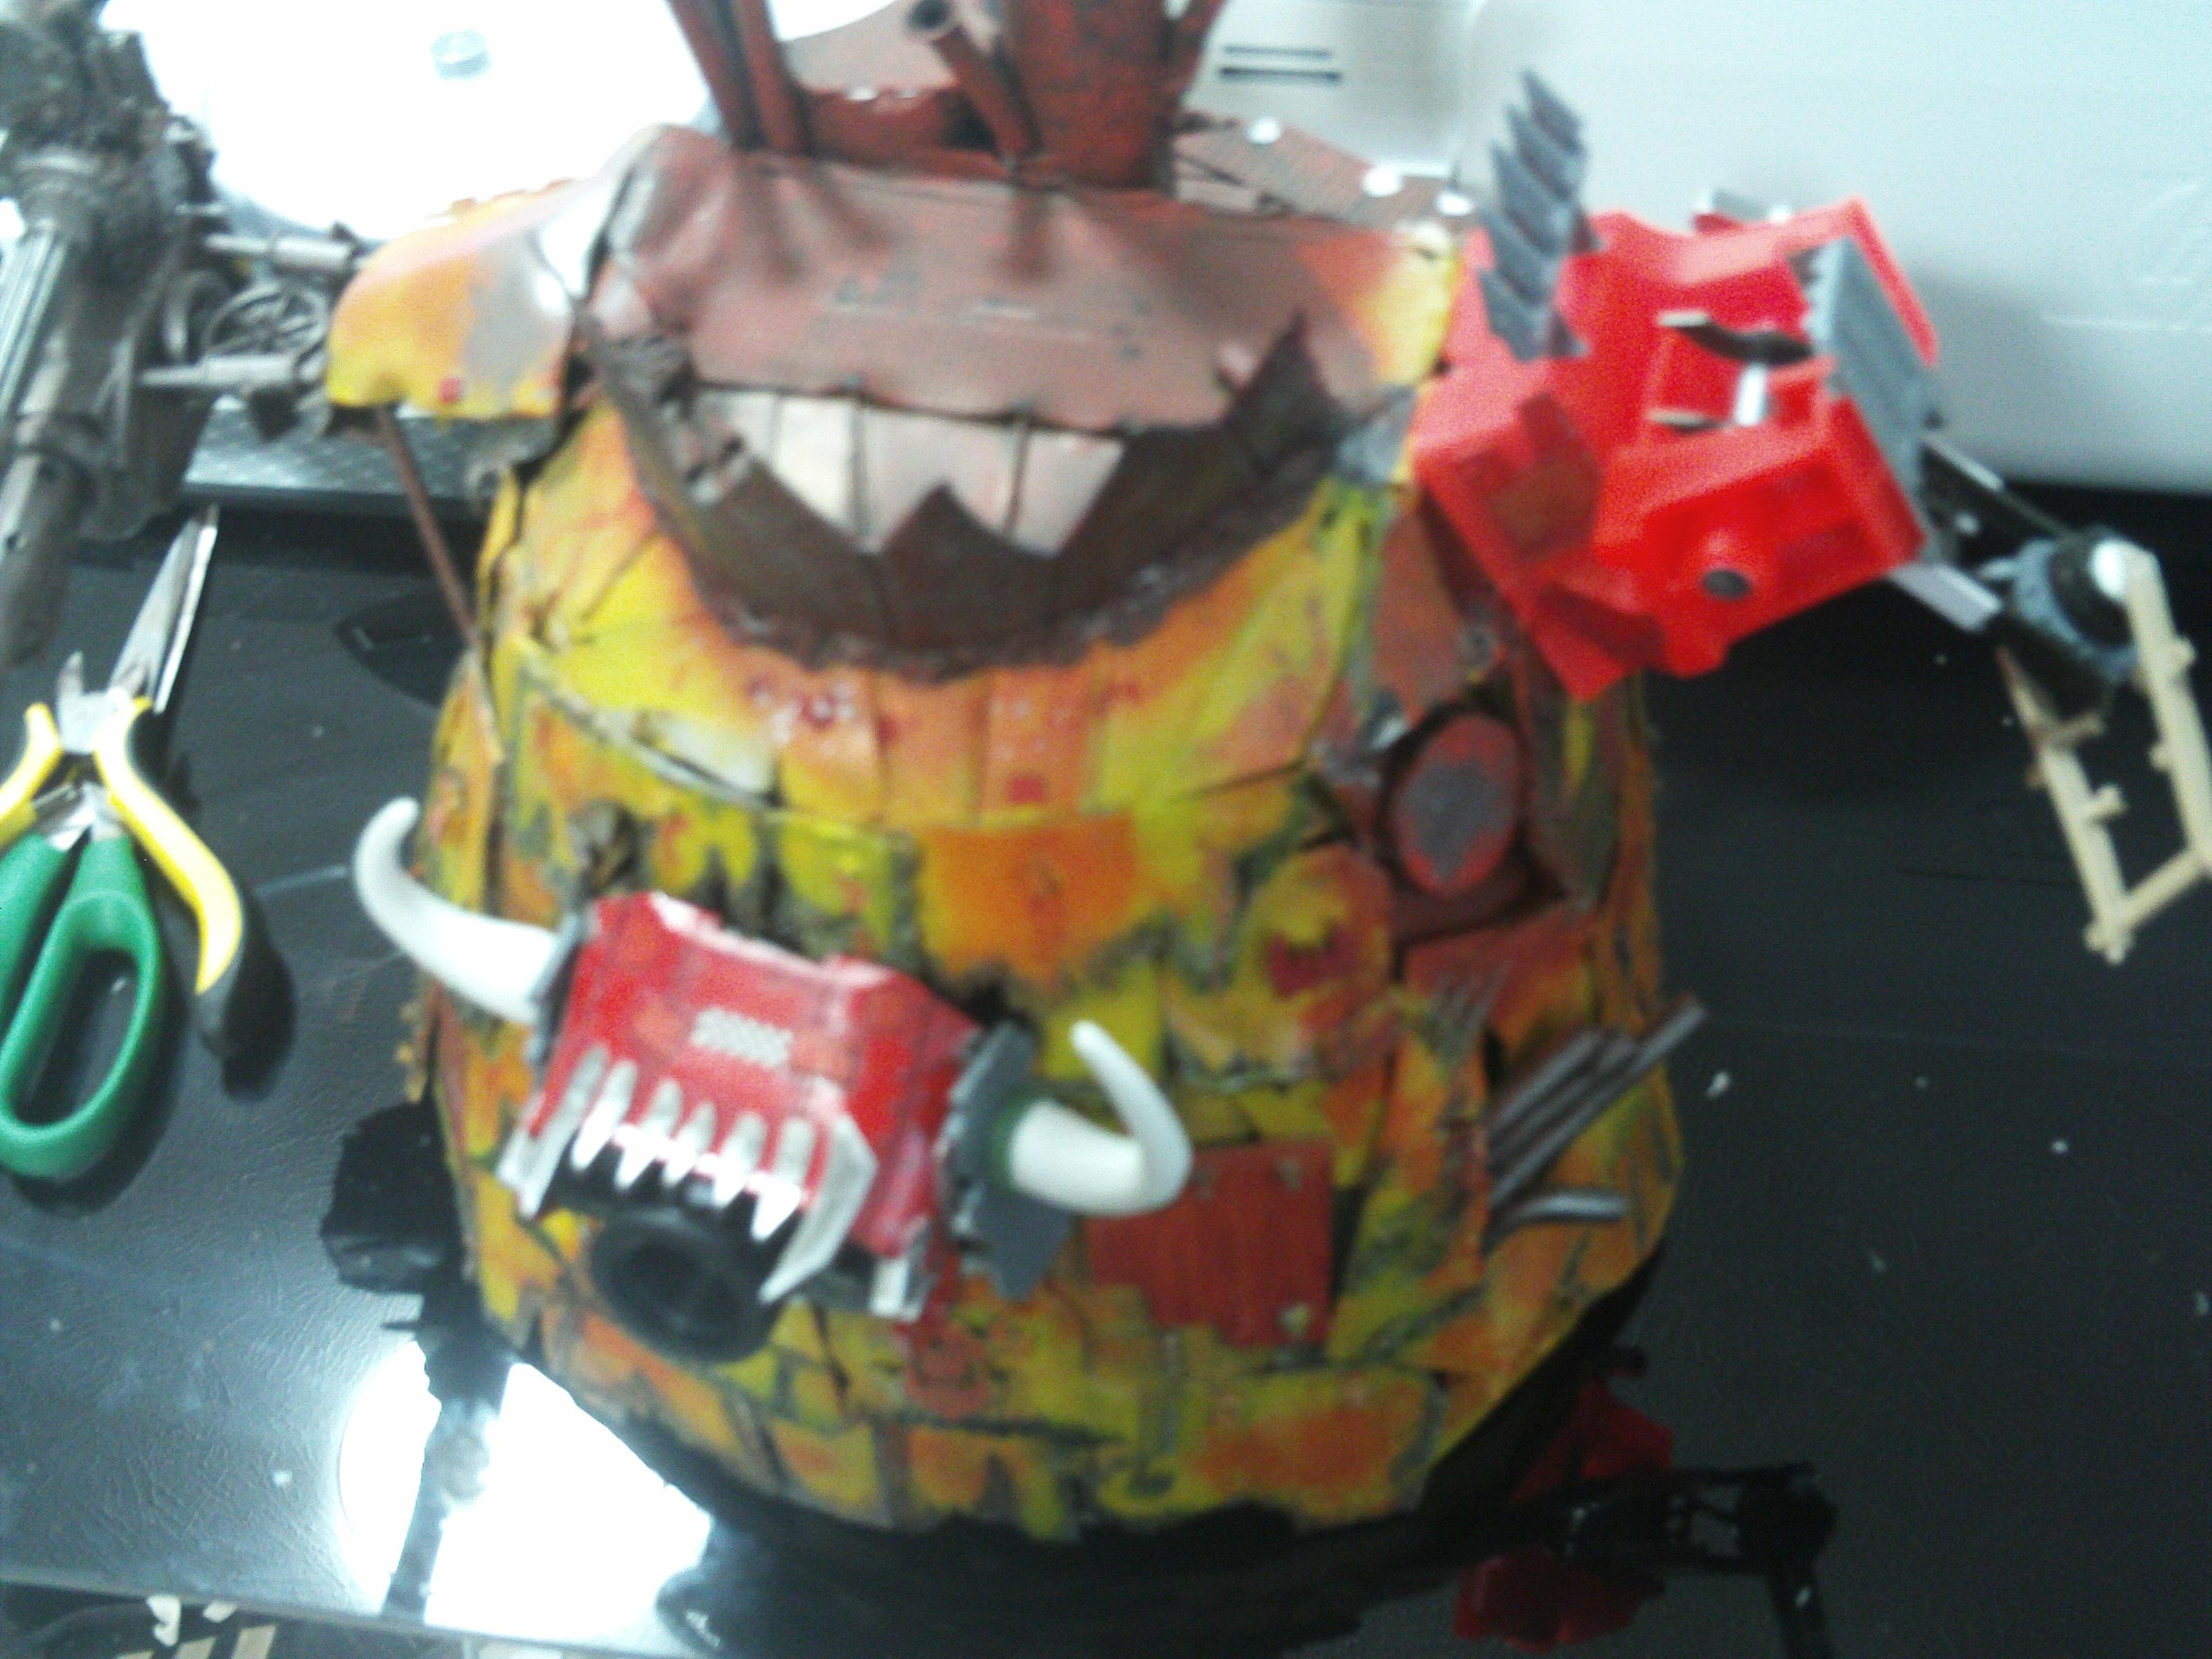 Wip Picture of my Stompa